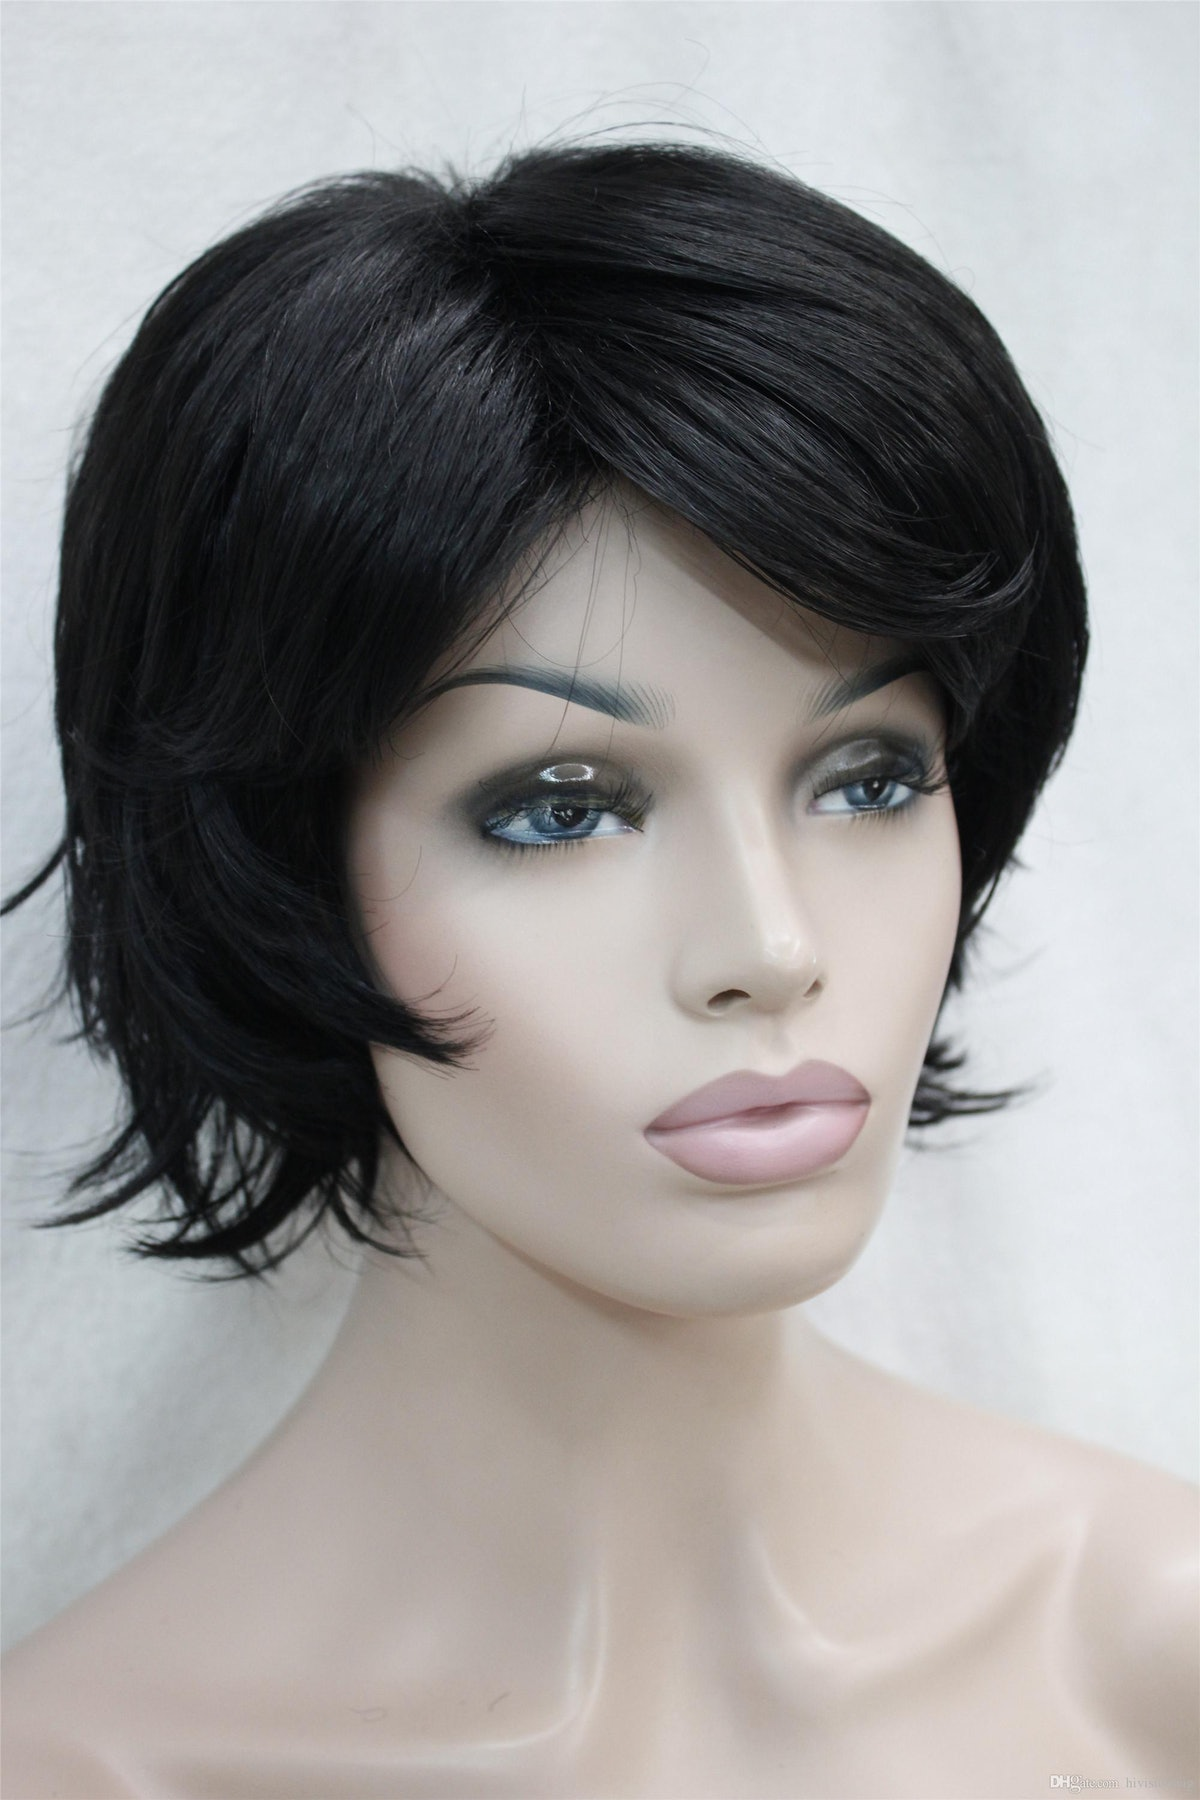 https://www.dhgate.com/product/super-fashion-charming-wig-beautiful-curly/396721371.html